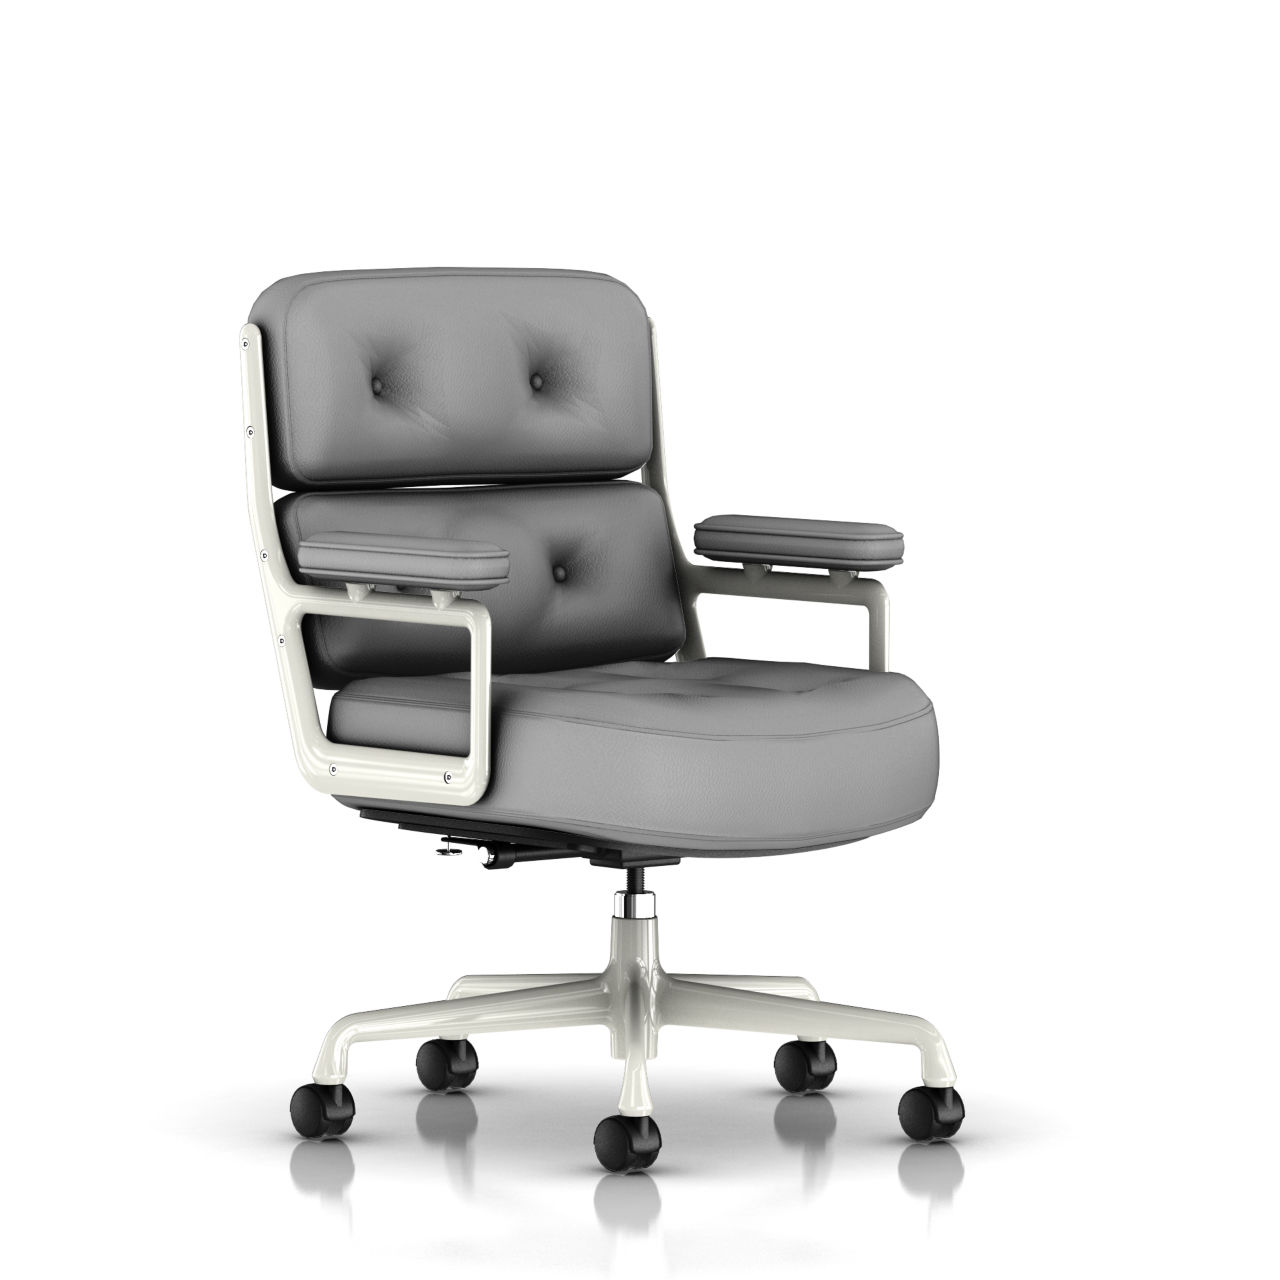 Eames Executive Work Chair in Smoke Leather by Herman Miller